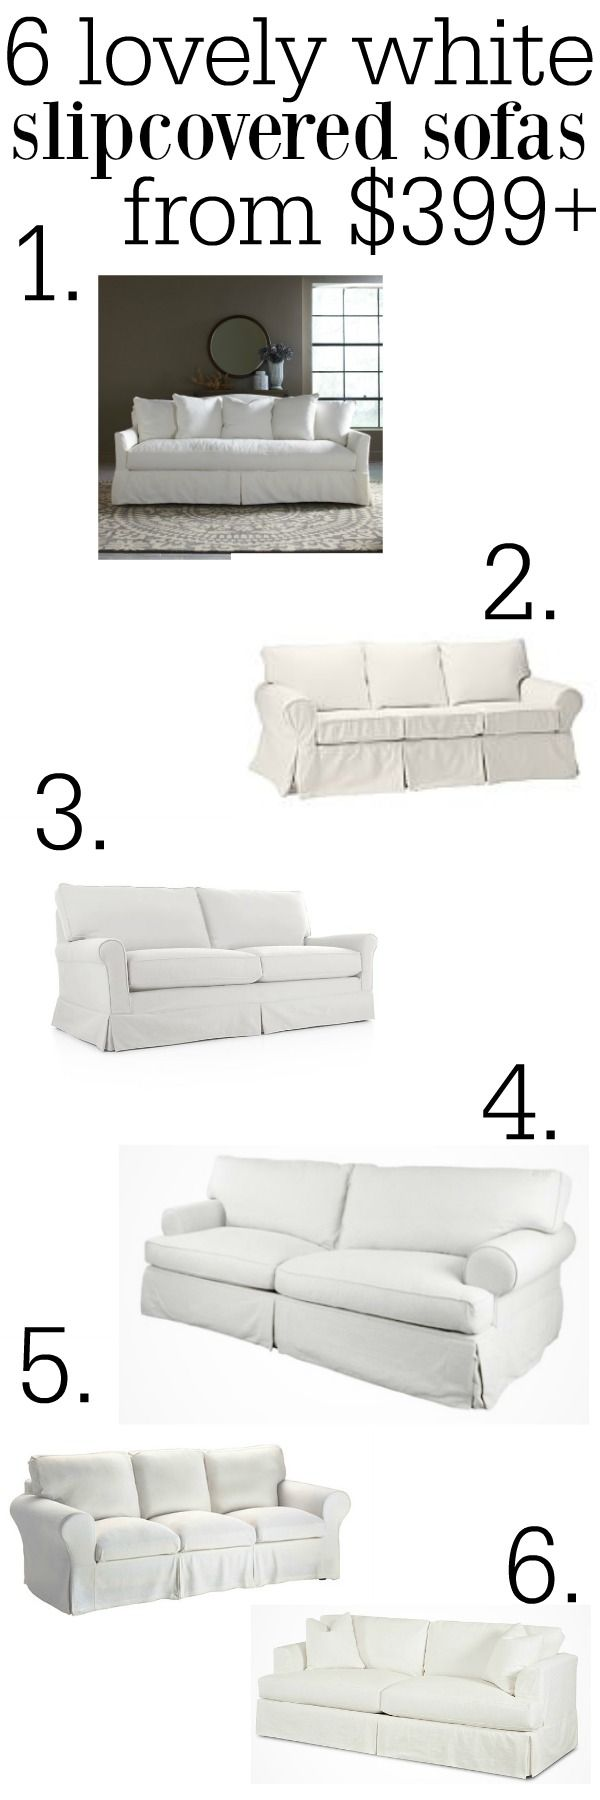 The Best White Slipcovered Sofas From $399+ A Great Pin For Places To Buy  Furniture In All Styles! Great For A Farmhouse Cottage Style Living Room U0026  Good On ...